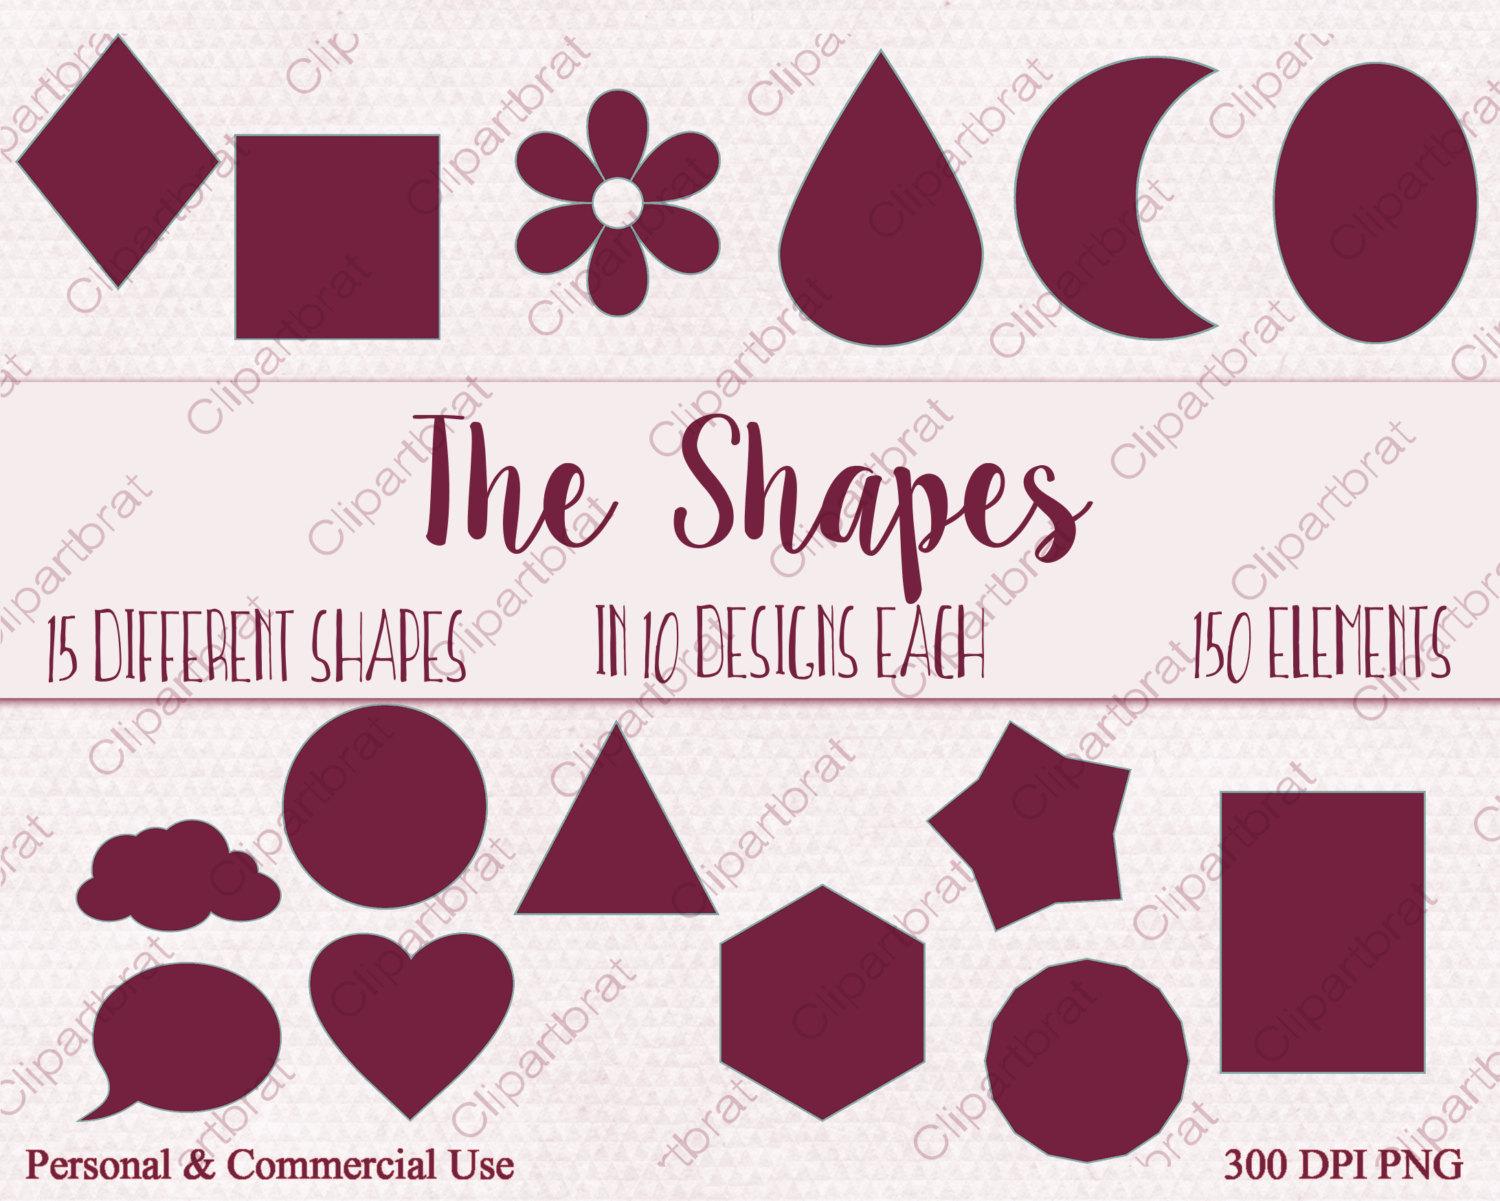 Triangle clipart different shape CLIPART This Art Coral is